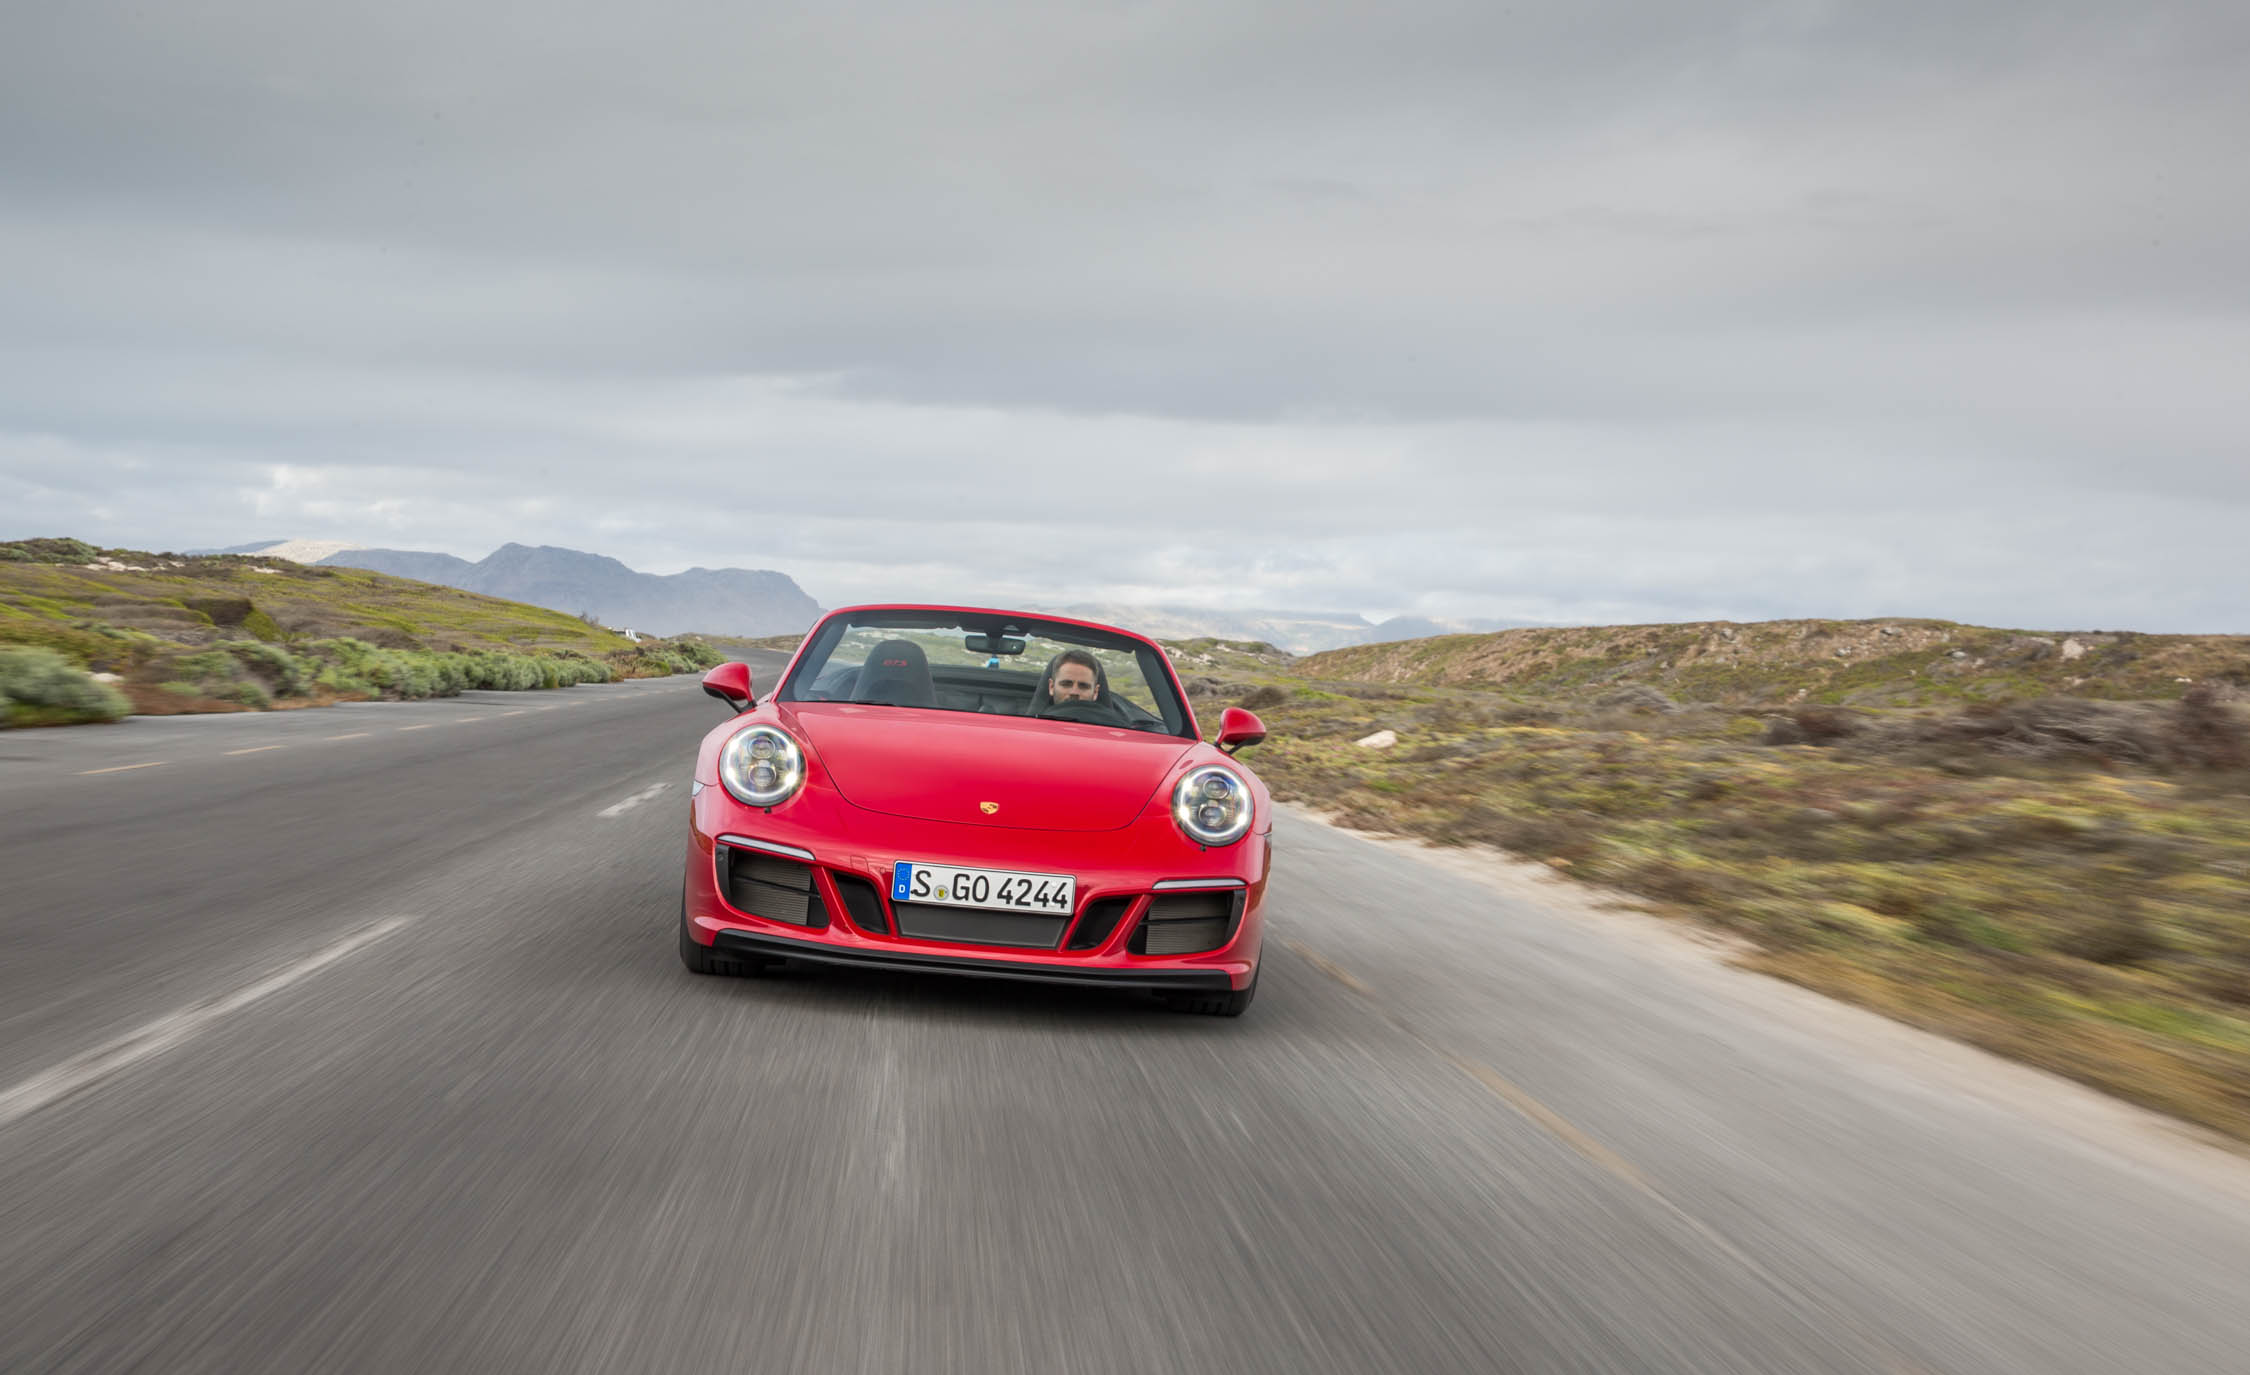 2017 Porsche 911 Carrera GTS Cabriolet Test Drive Front View (Photo 38 of 97)